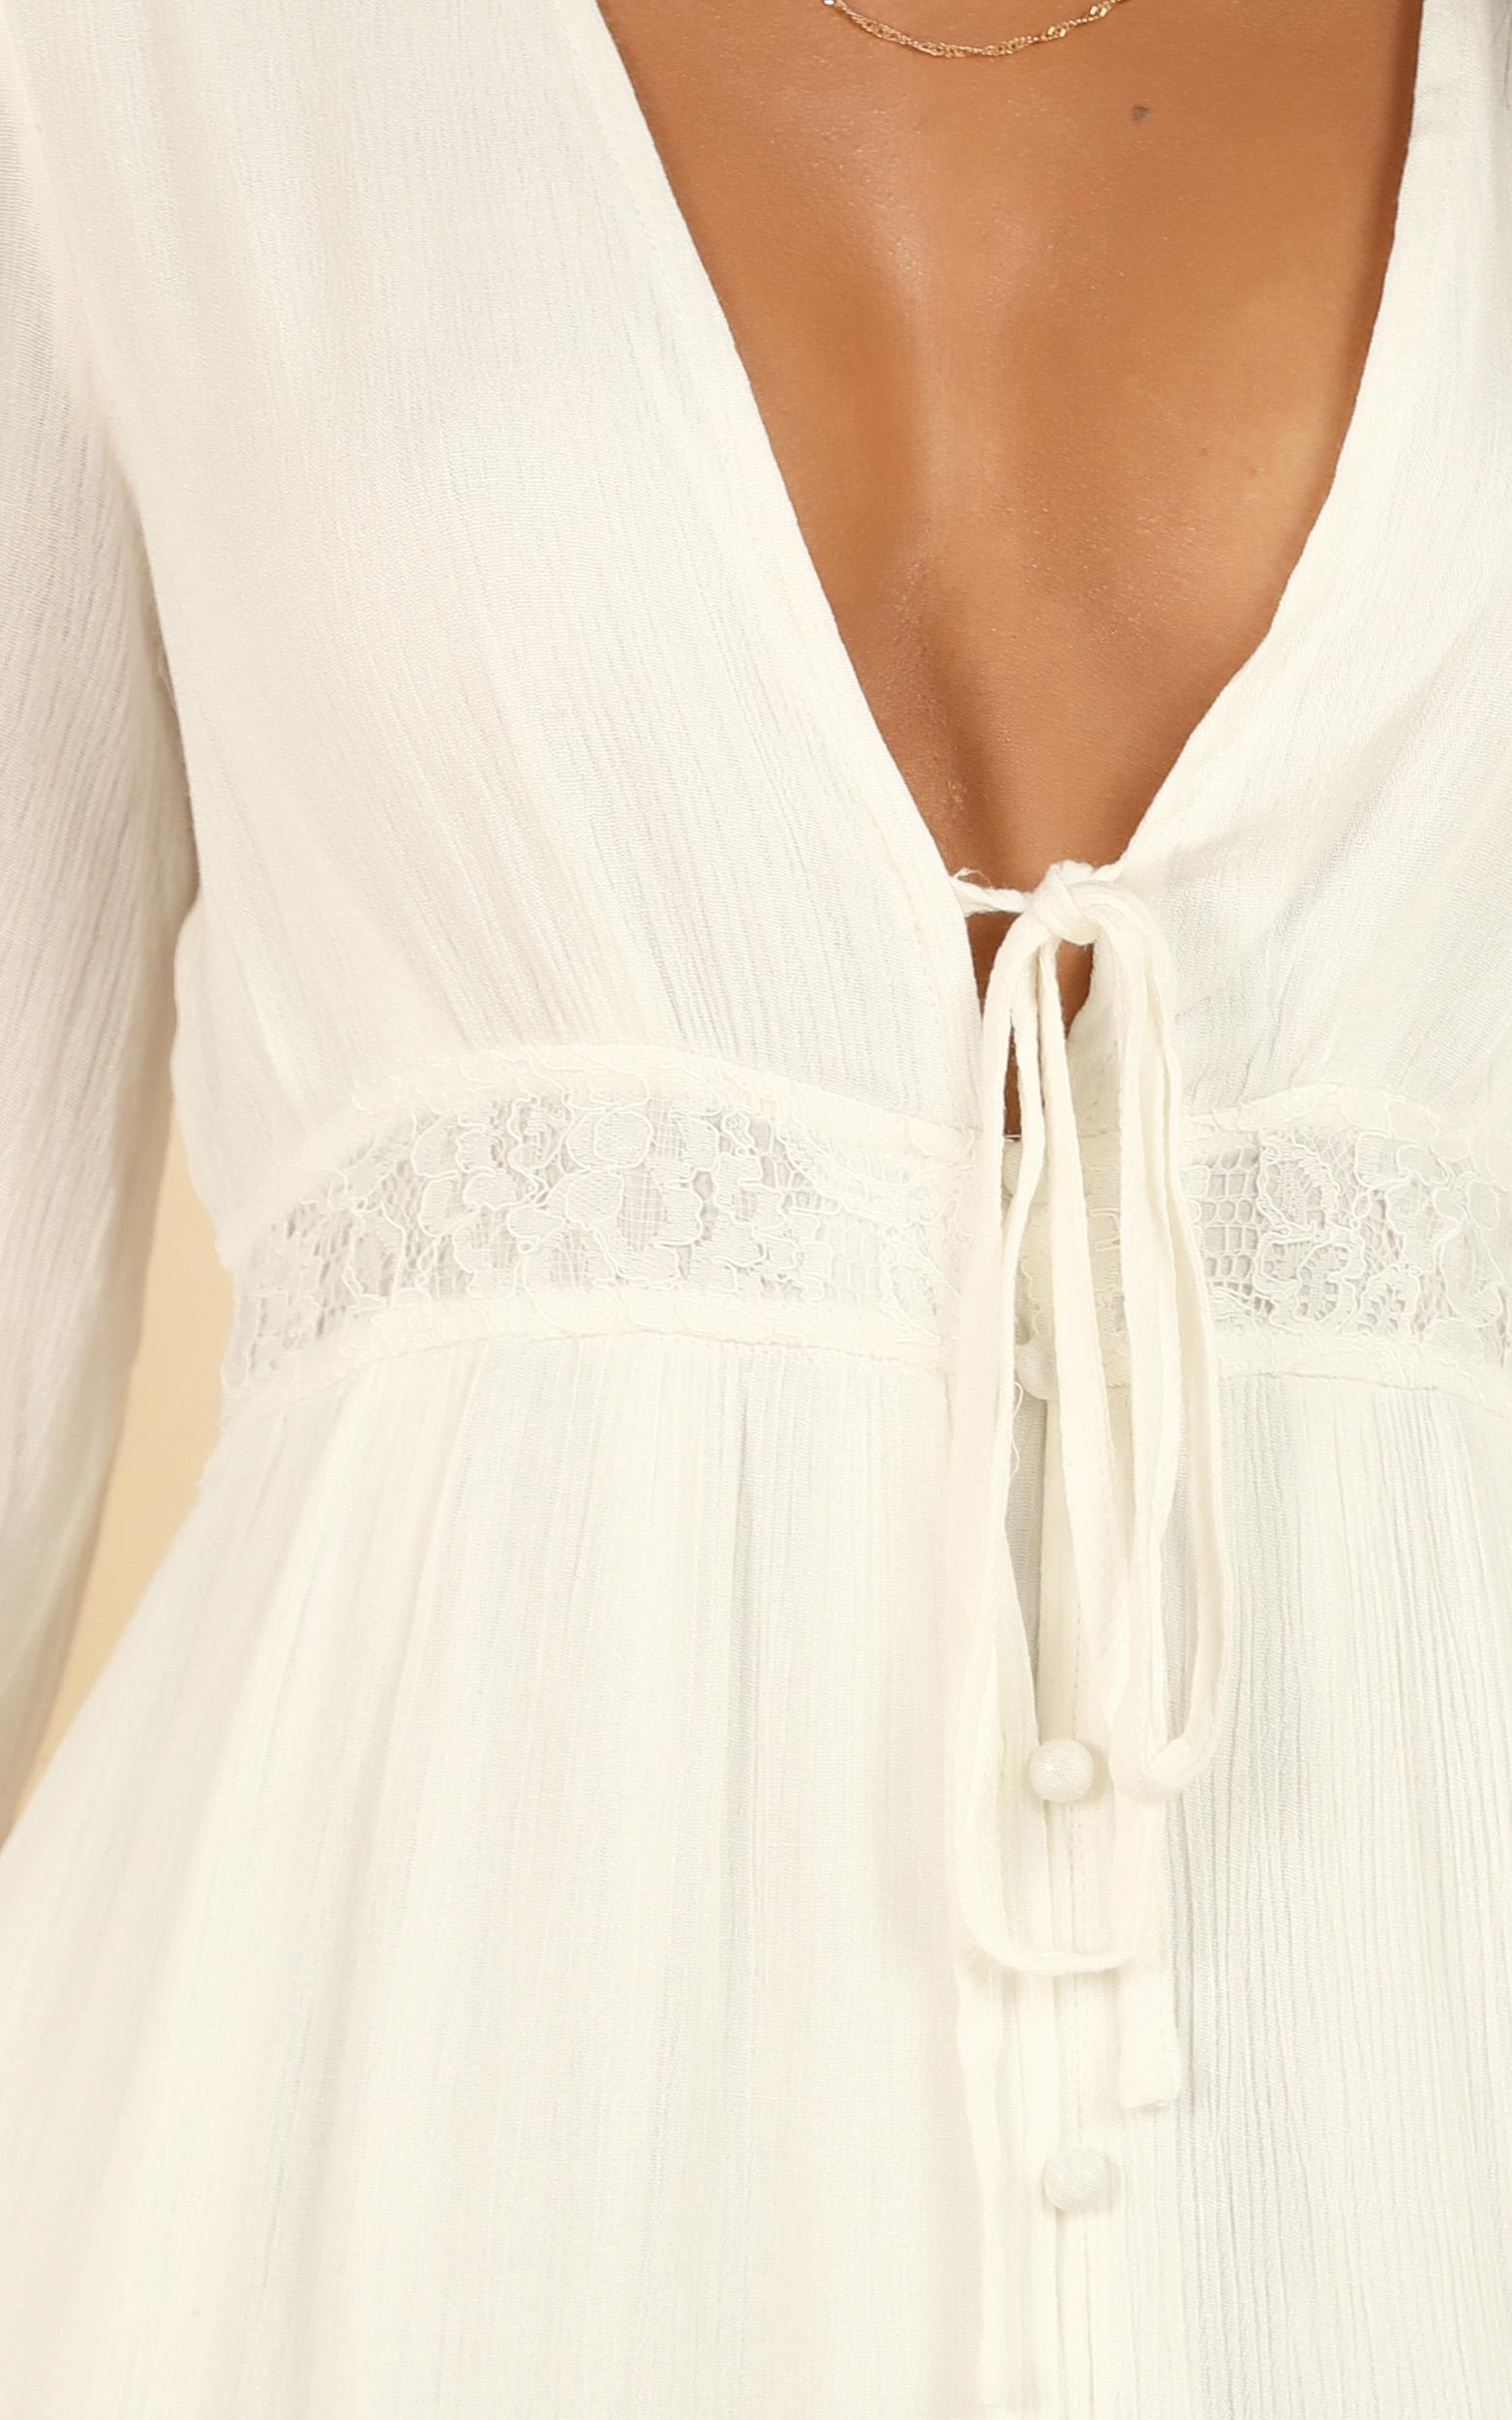 Smooth Sailer Dress in white - 20 (XXXXL), White, hi-res image number null